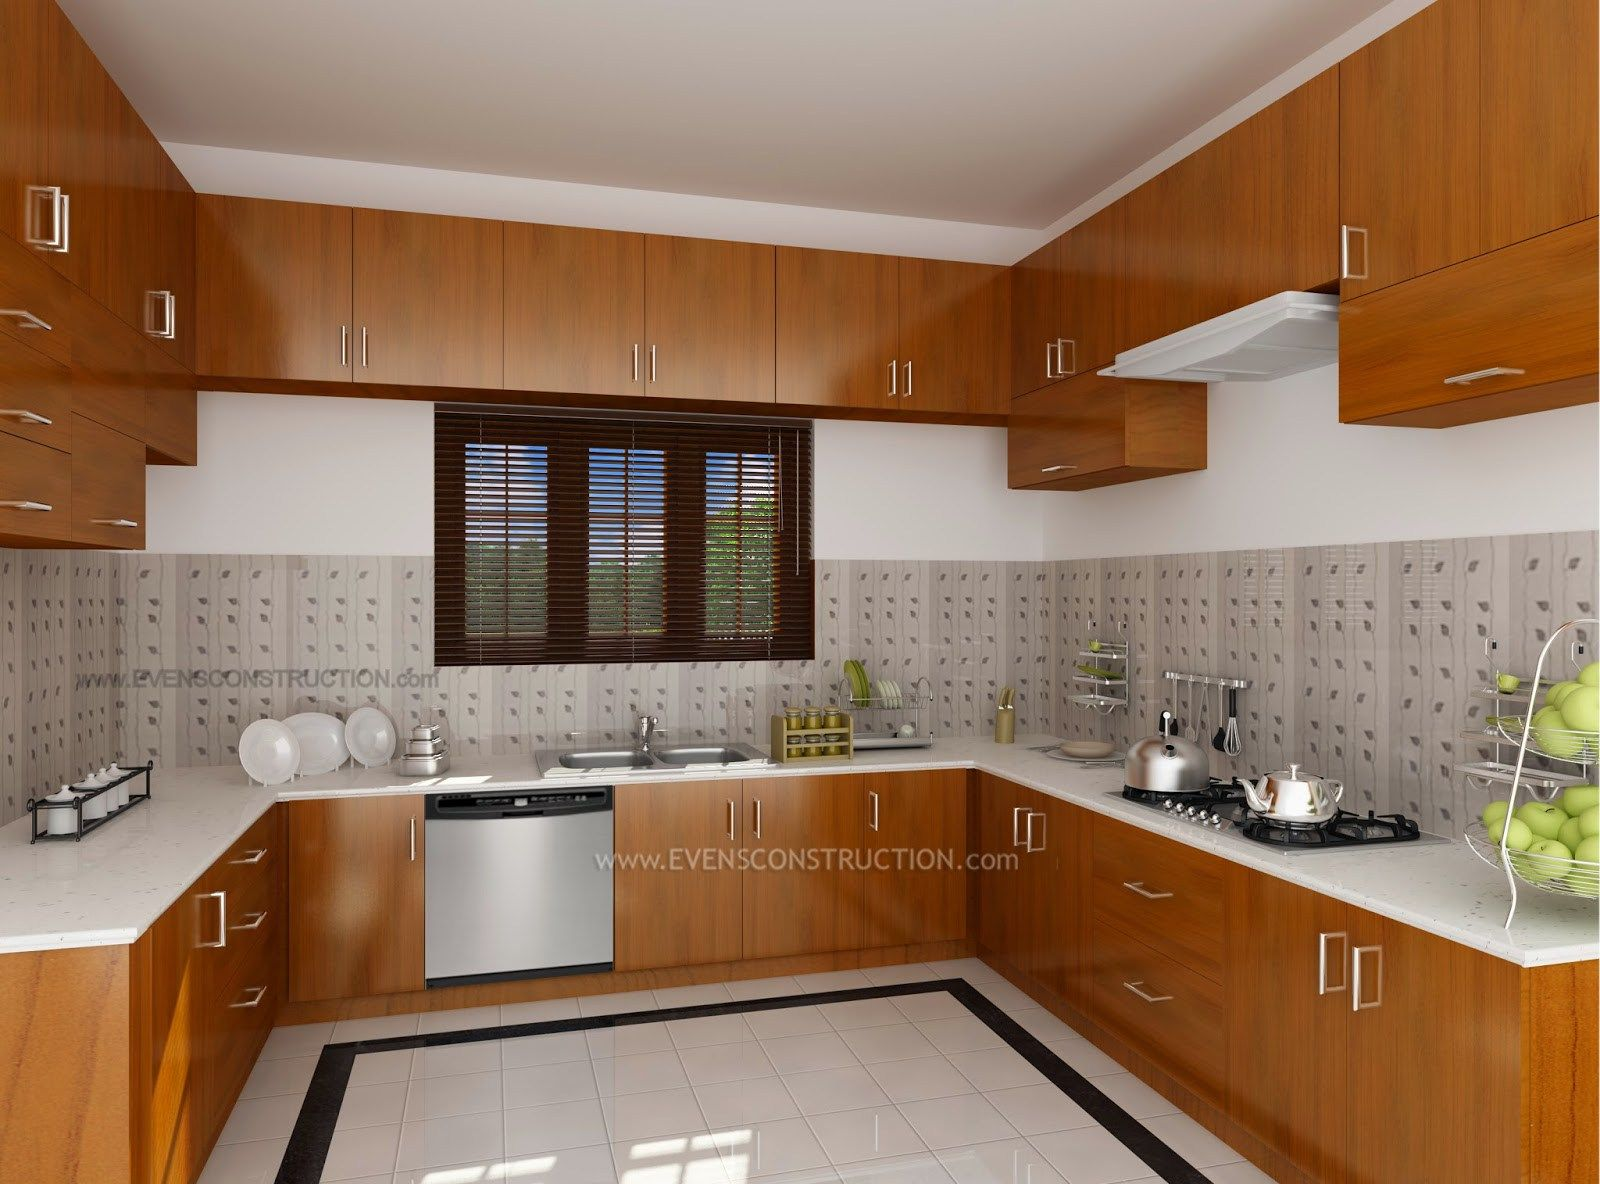 Ordinaire Design Interior Kitchen Home Kerala Modern House Kitchen Kitchen Dining  Kitchen Interior Designs Subin Surendran Architects